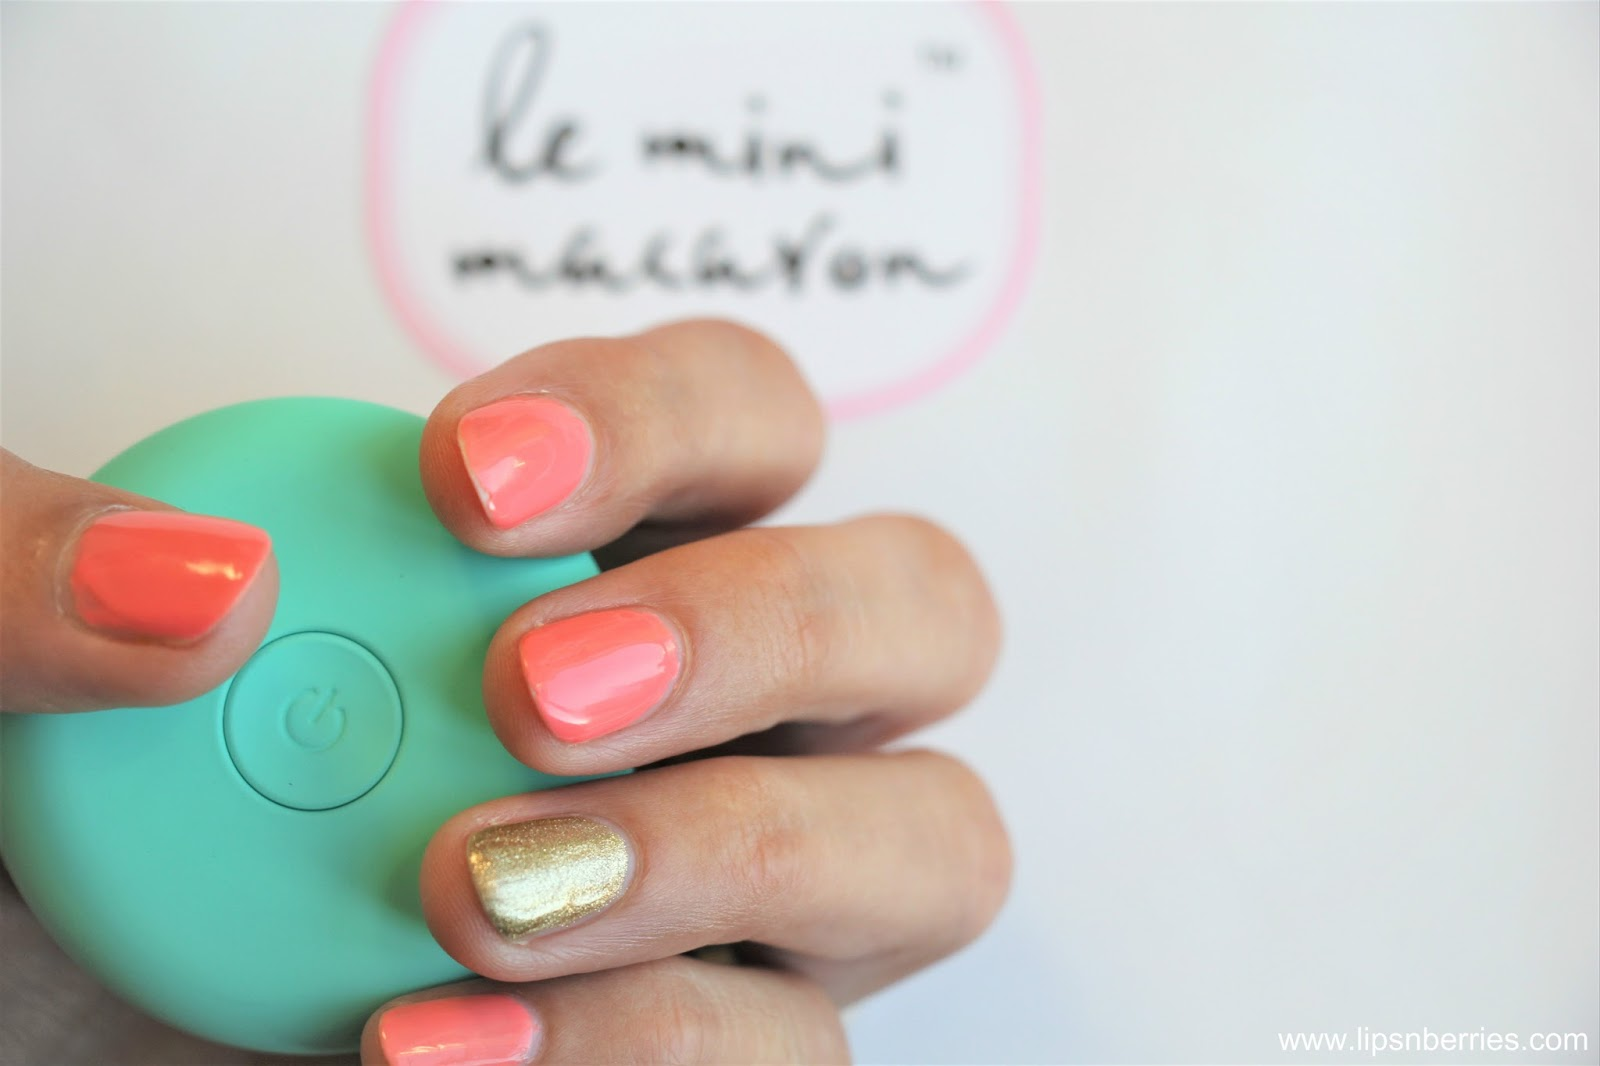 Le Mini Macaron is here to give you a flawless (and affordable) at-home gel manicure recommendations